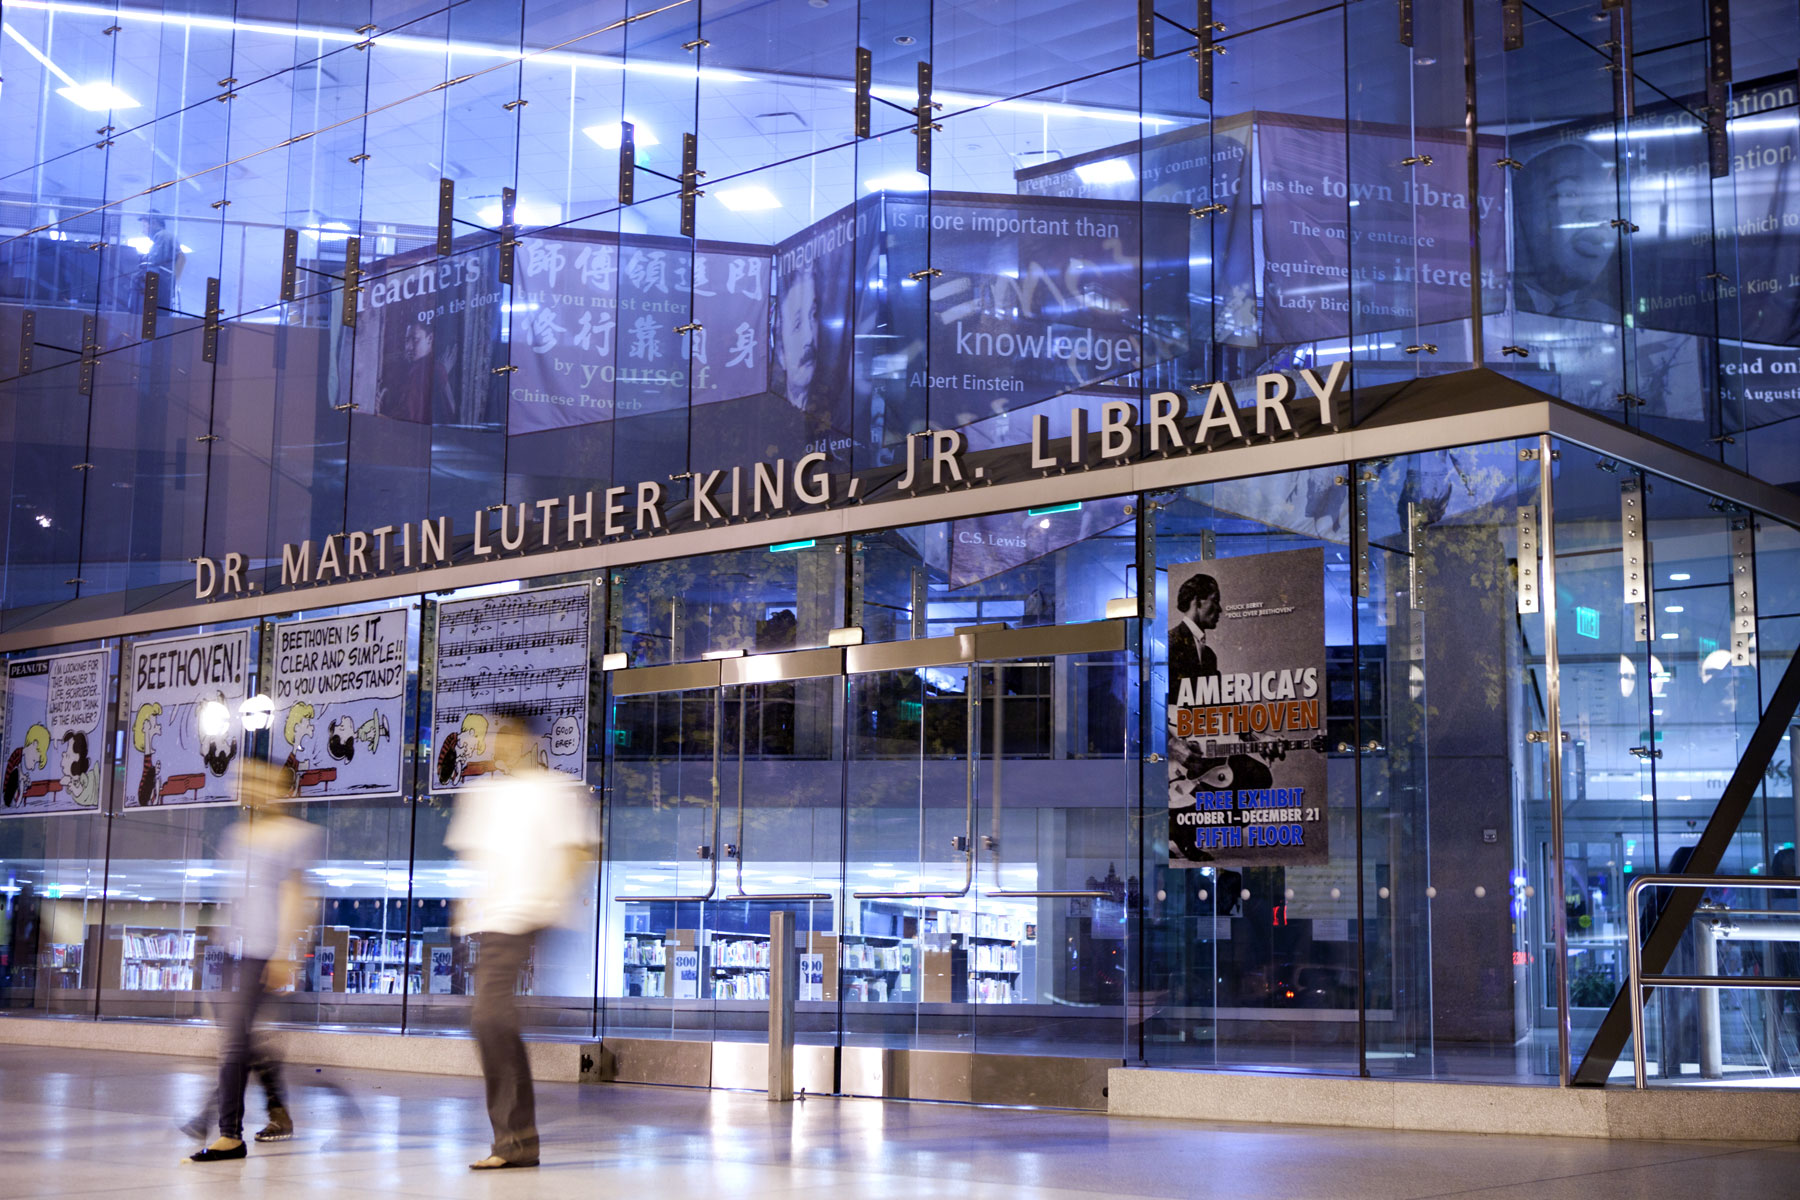 Dr. Martin Lutehr King, Jr. Library